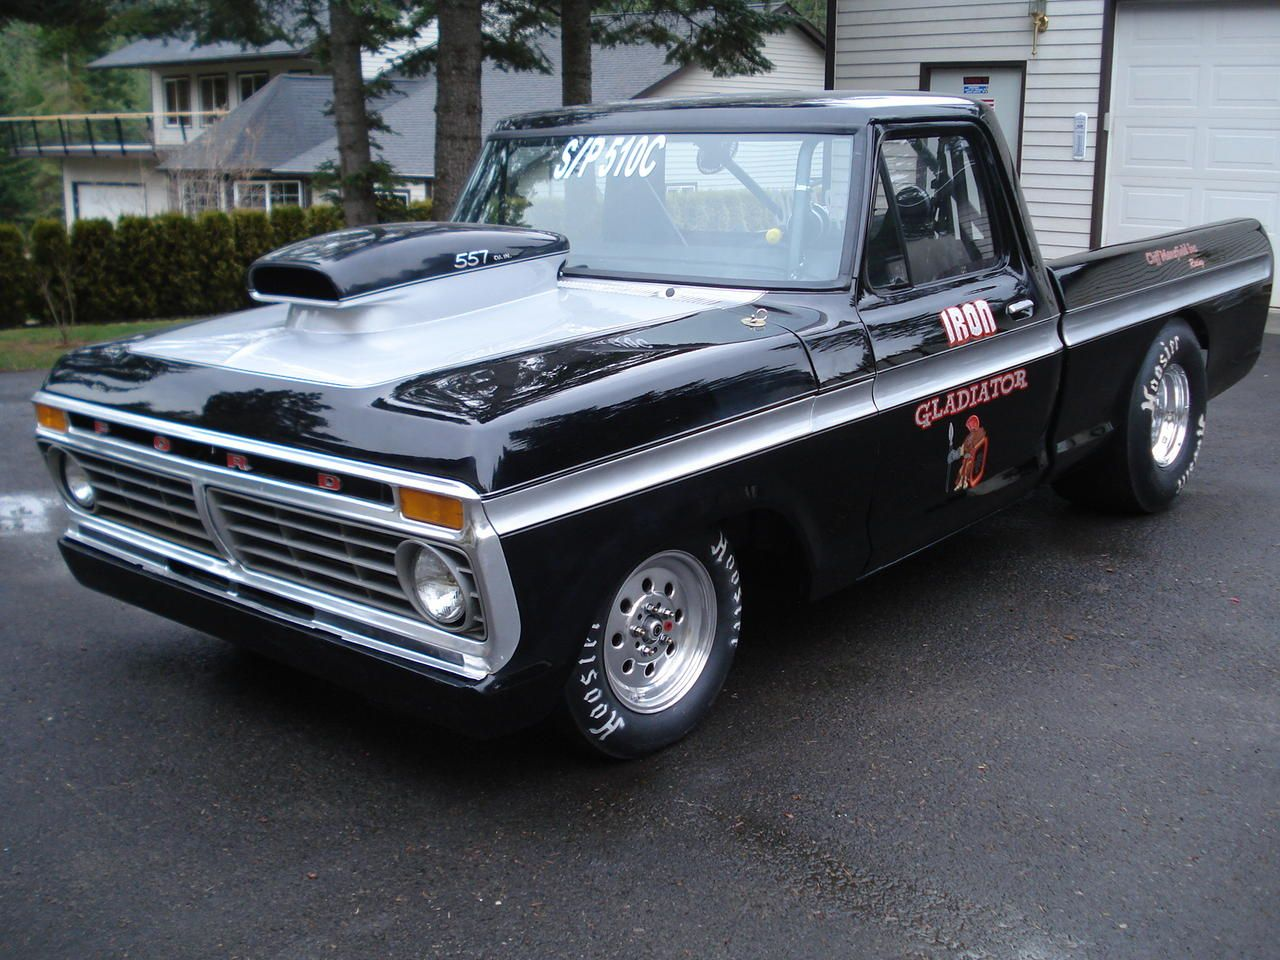 Truck 1977 chevy truck hood : Lets see pics of pro-street & drag truck dents - Ford Truck ...